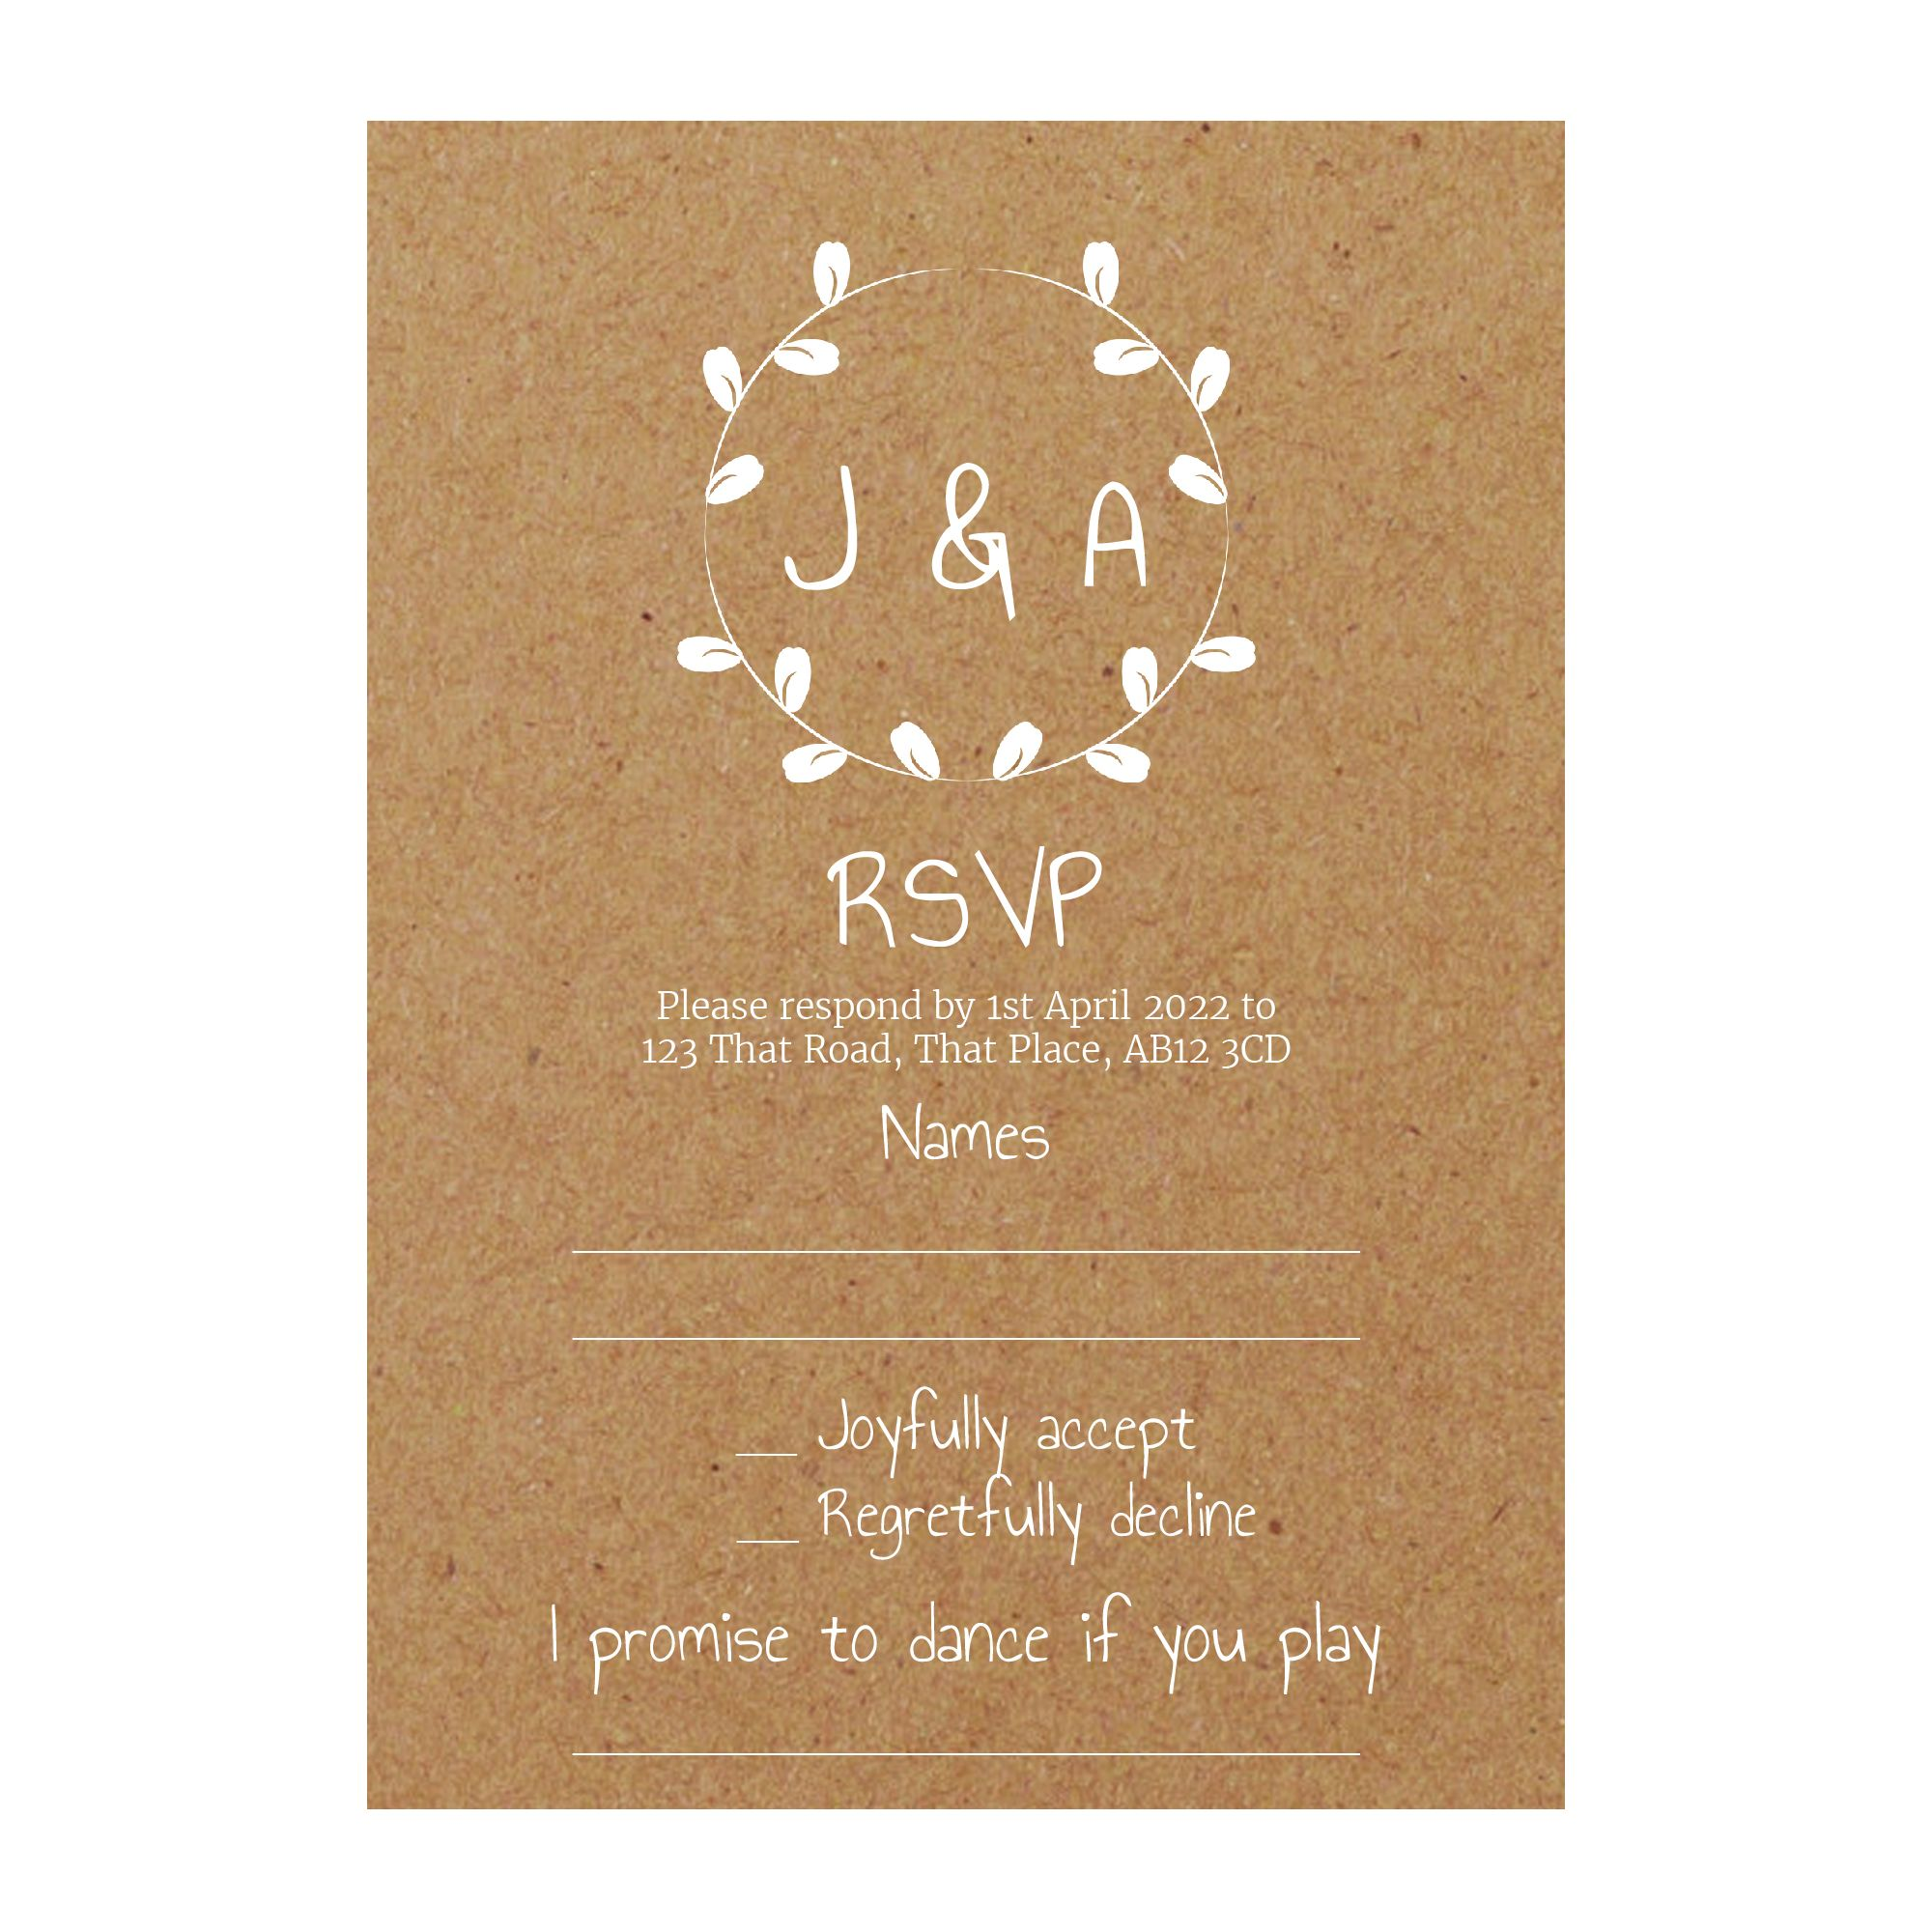 Recycled Brown Kraft with White Ink Minimalist Floral RSVP Song Request Cards